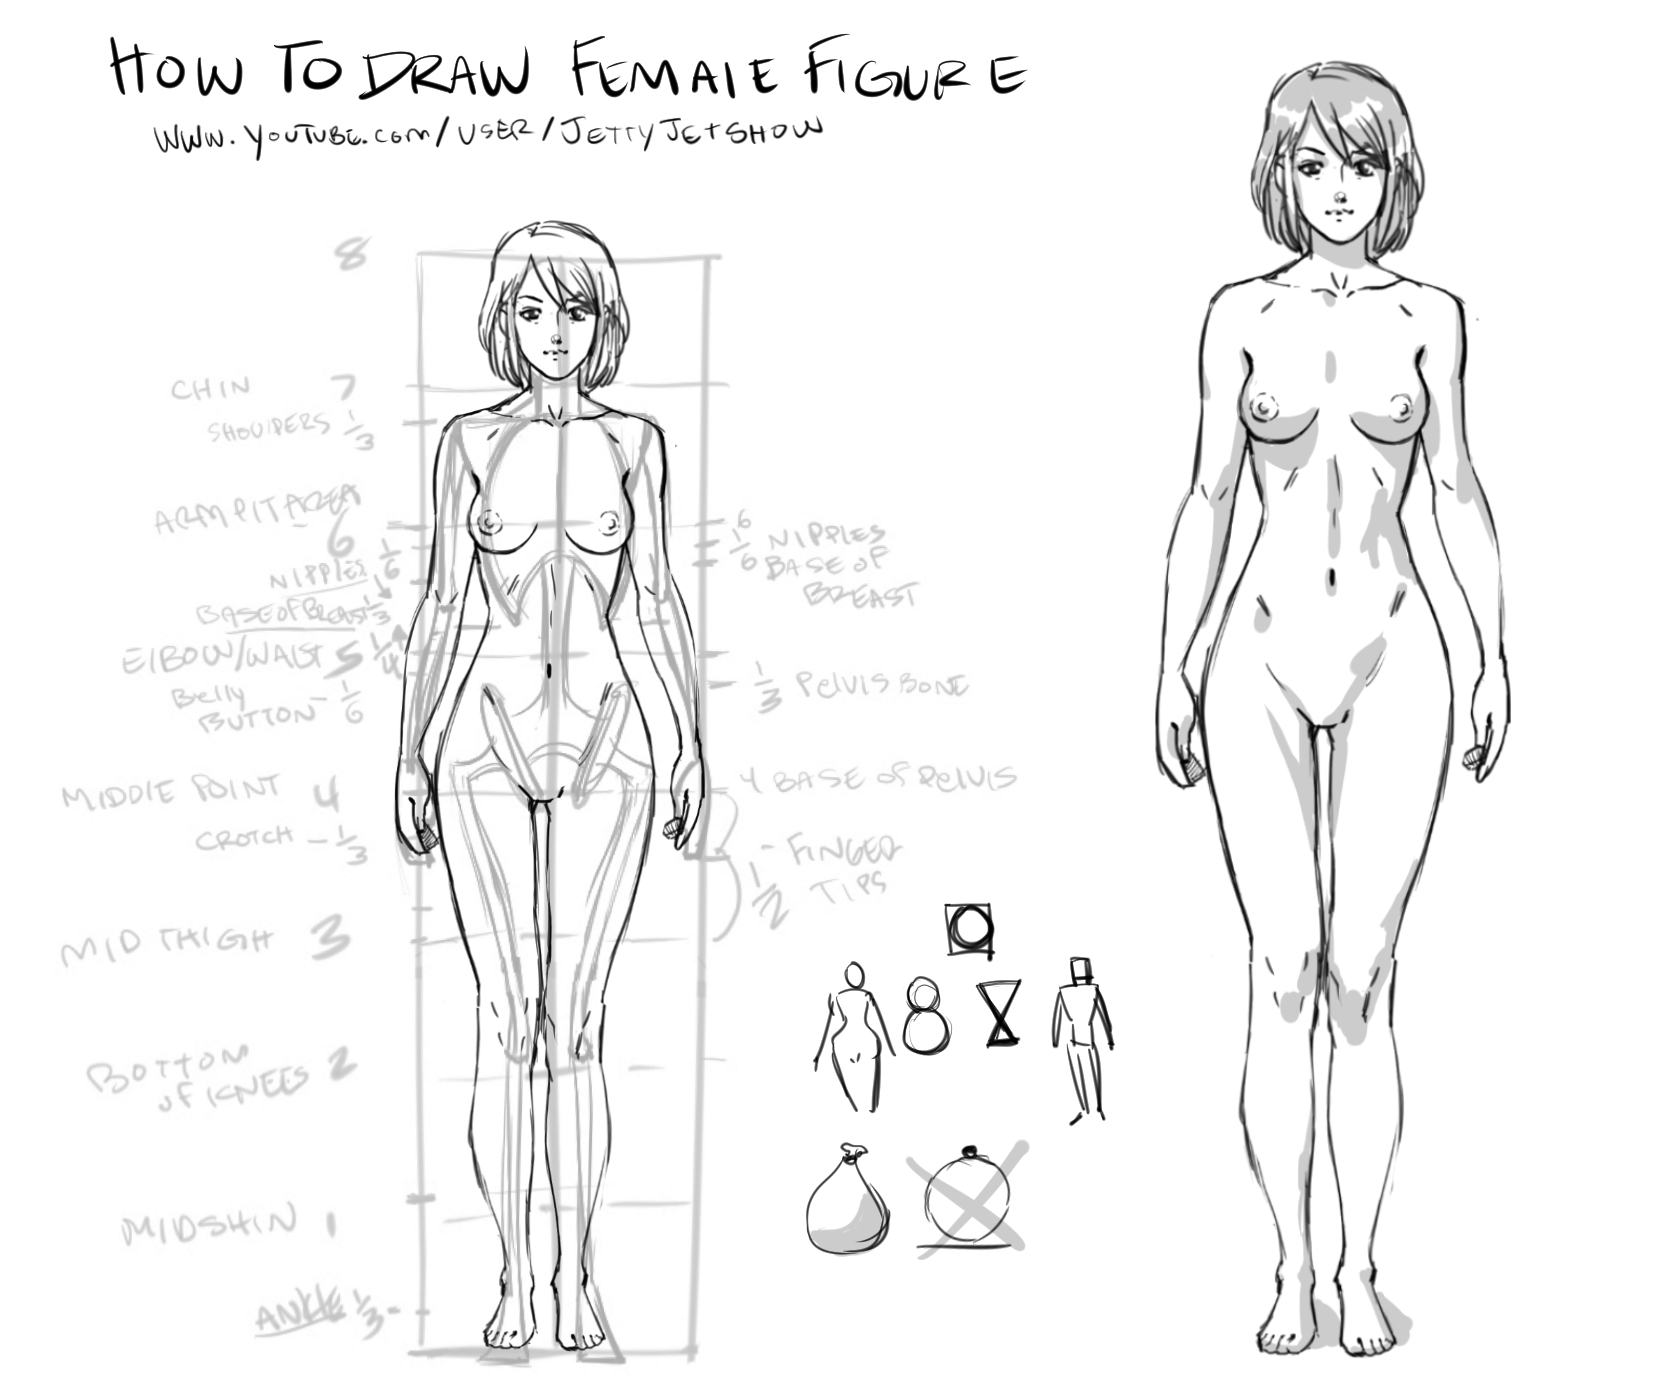 Beginnier How to Draw Female